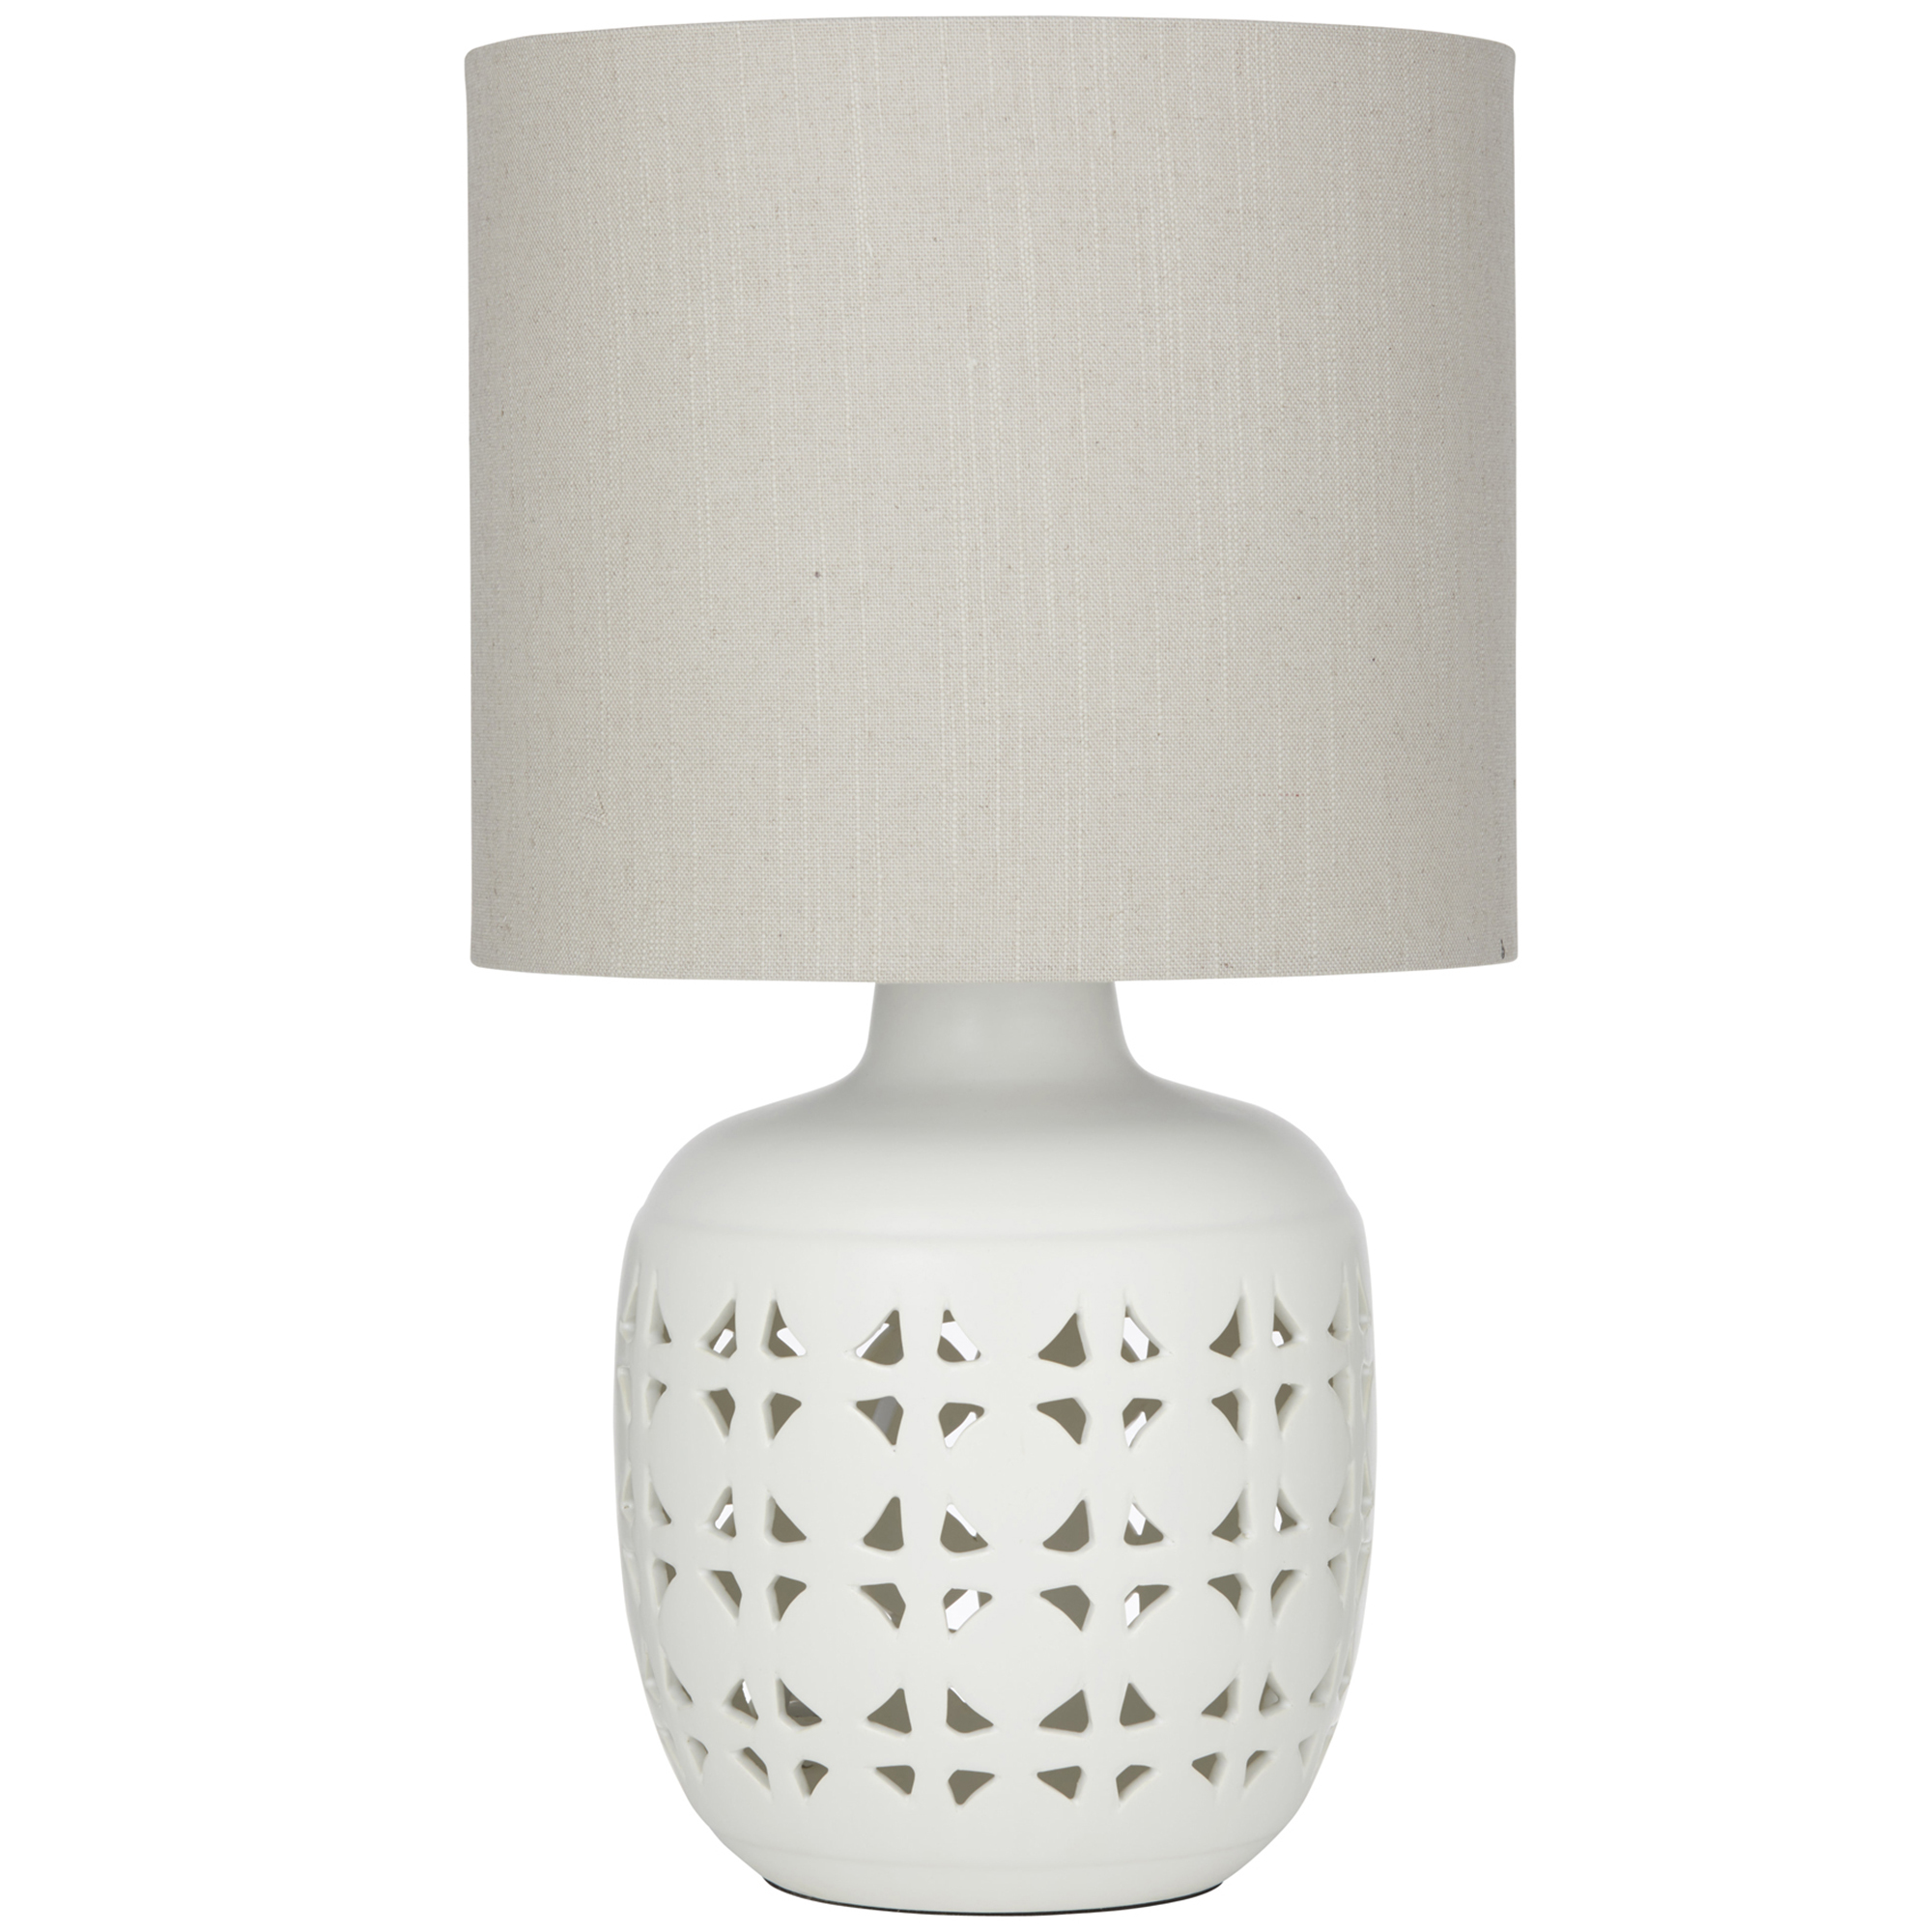 Picture of: The Home Collective White Fiesta Ceramic Table Lamp Reviews Temple Webster